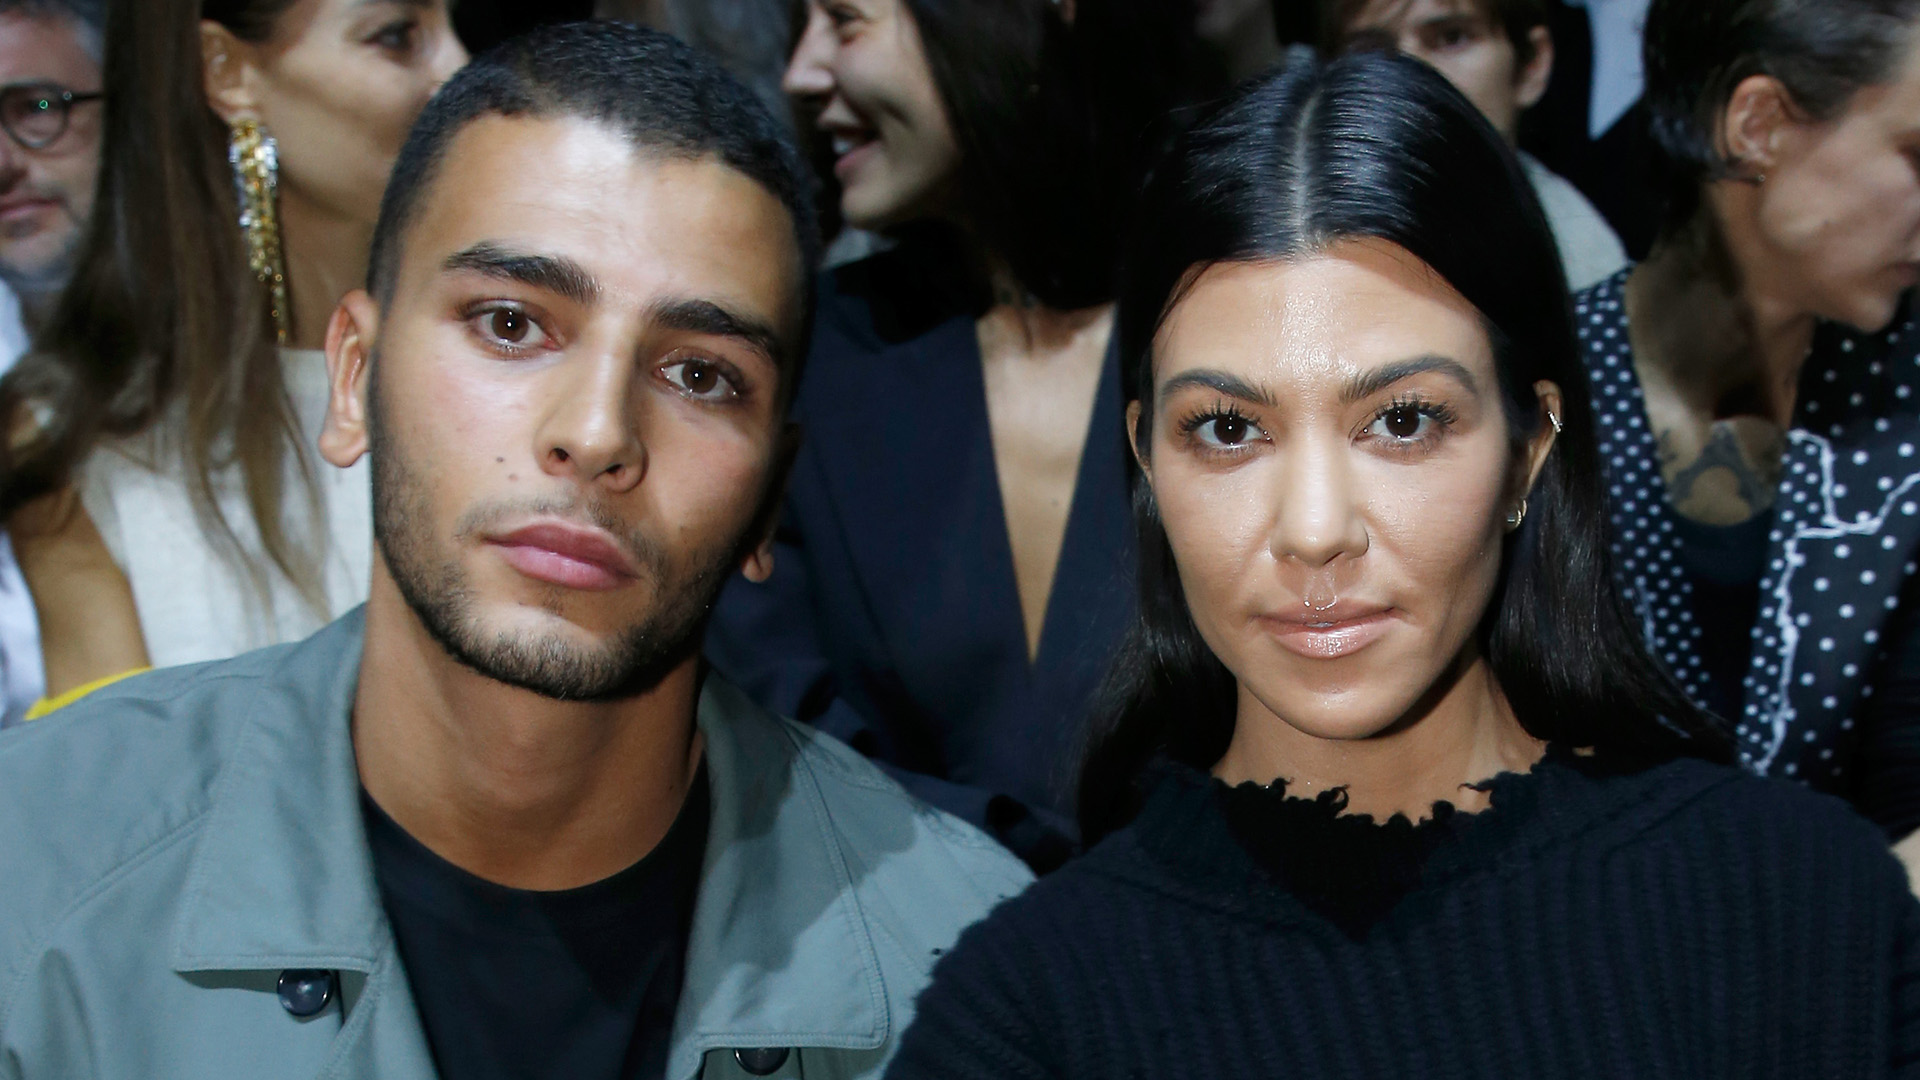 PARIS, FRANCE - SEPTEMBER 30:  Kourtney Kardashian (L) and her companion Younes Bendjima (R) attend the Haider Ackermann show as part of the Paris Fashion Week Womenswear  Spring/Summer 2018 on September 30, 2017 in Paris, France.  (Photo by Bertrand Rindoff Petroff/Getty Images)